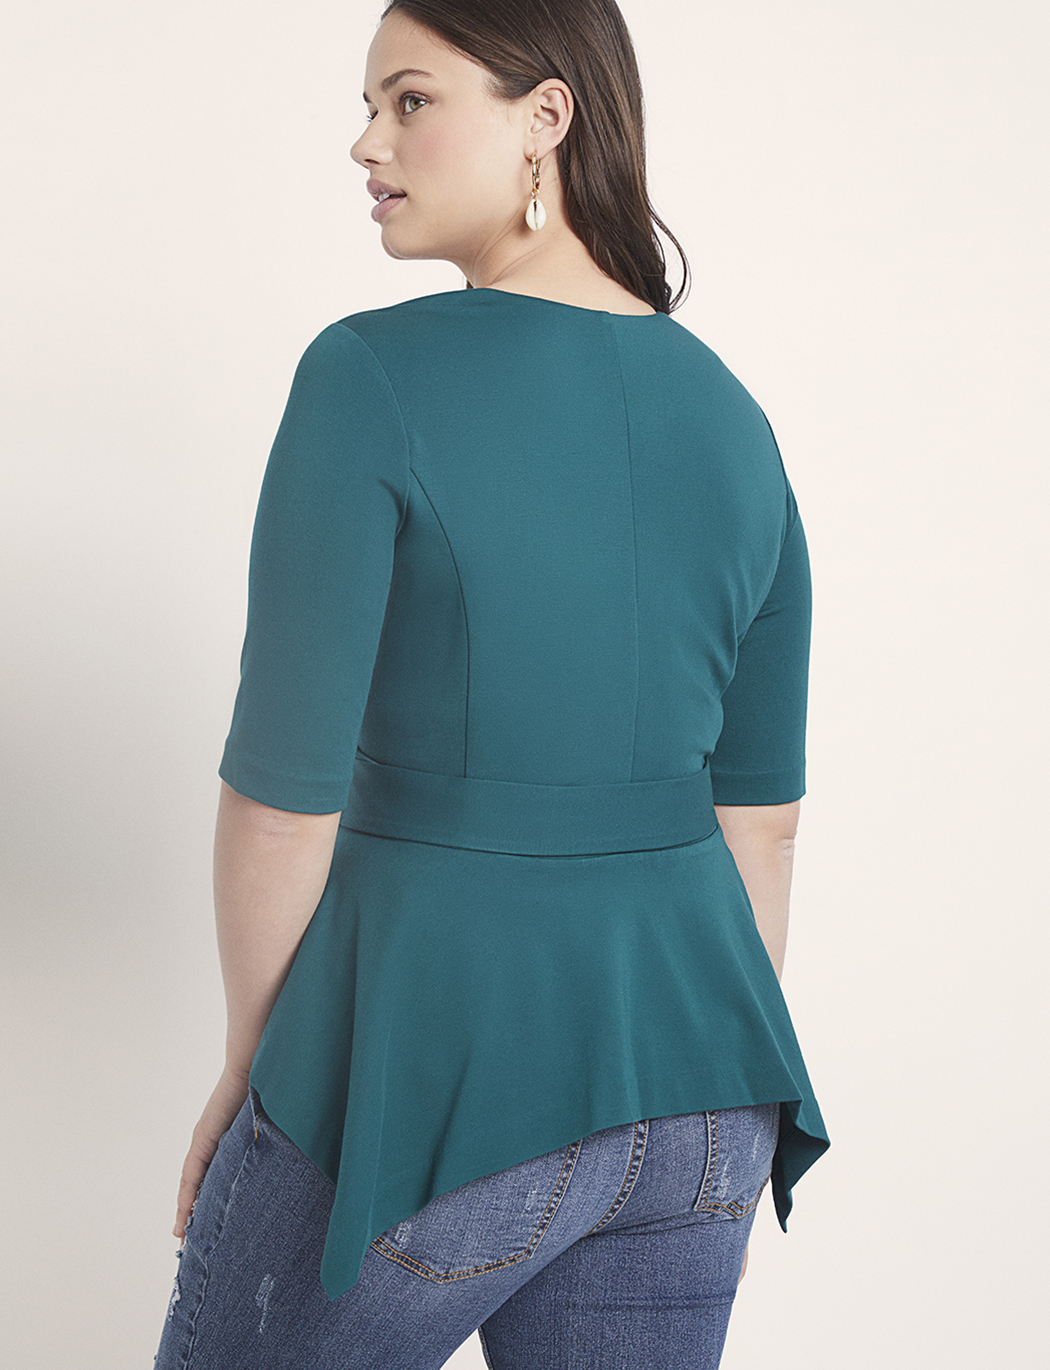 Short Sleeve Peplum Jacket with Belt